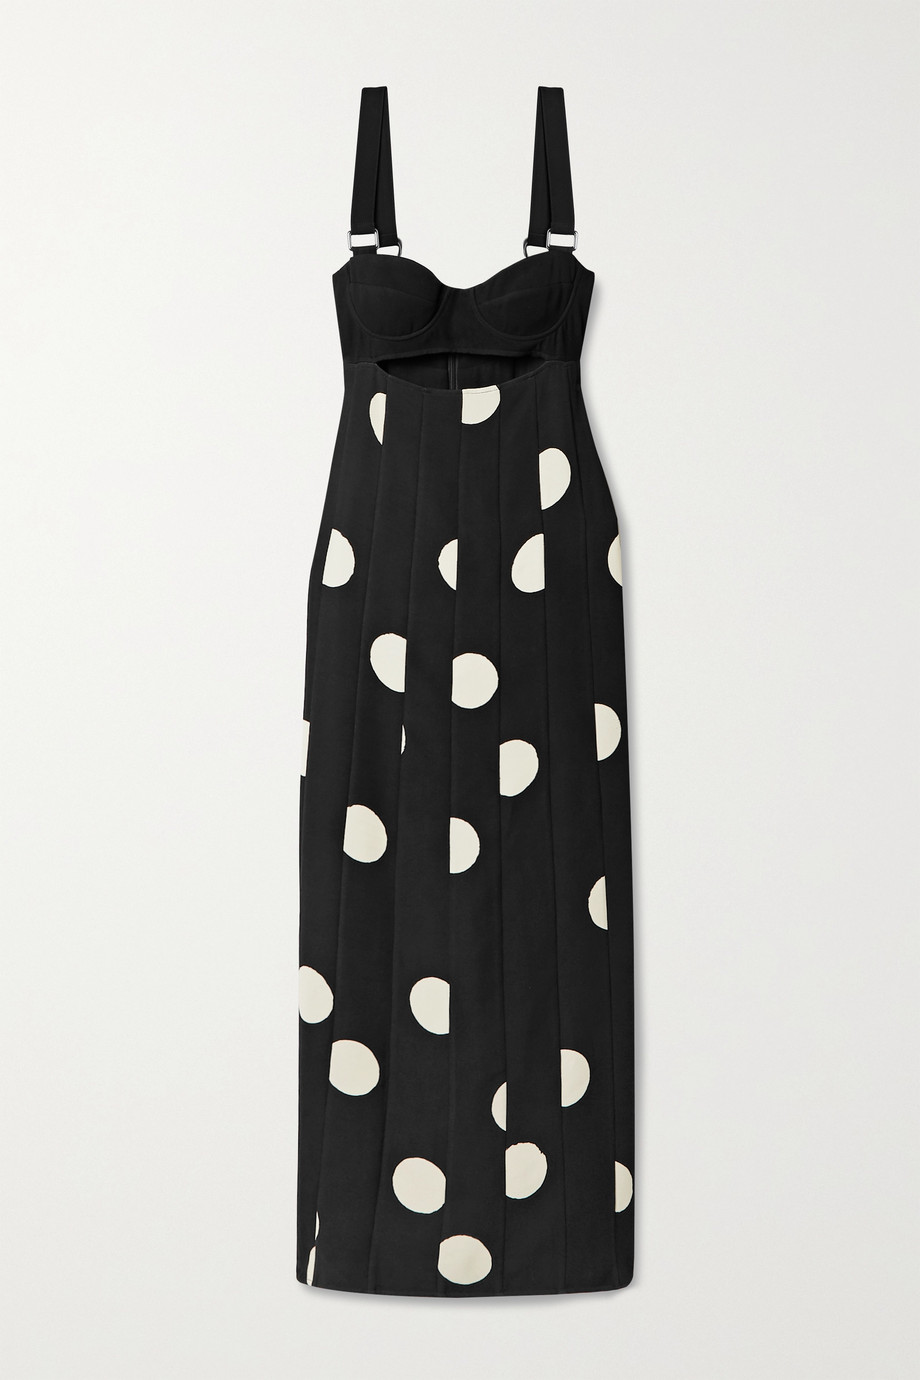 Proenza Schouler Cutout polka-dot crepe midi dress